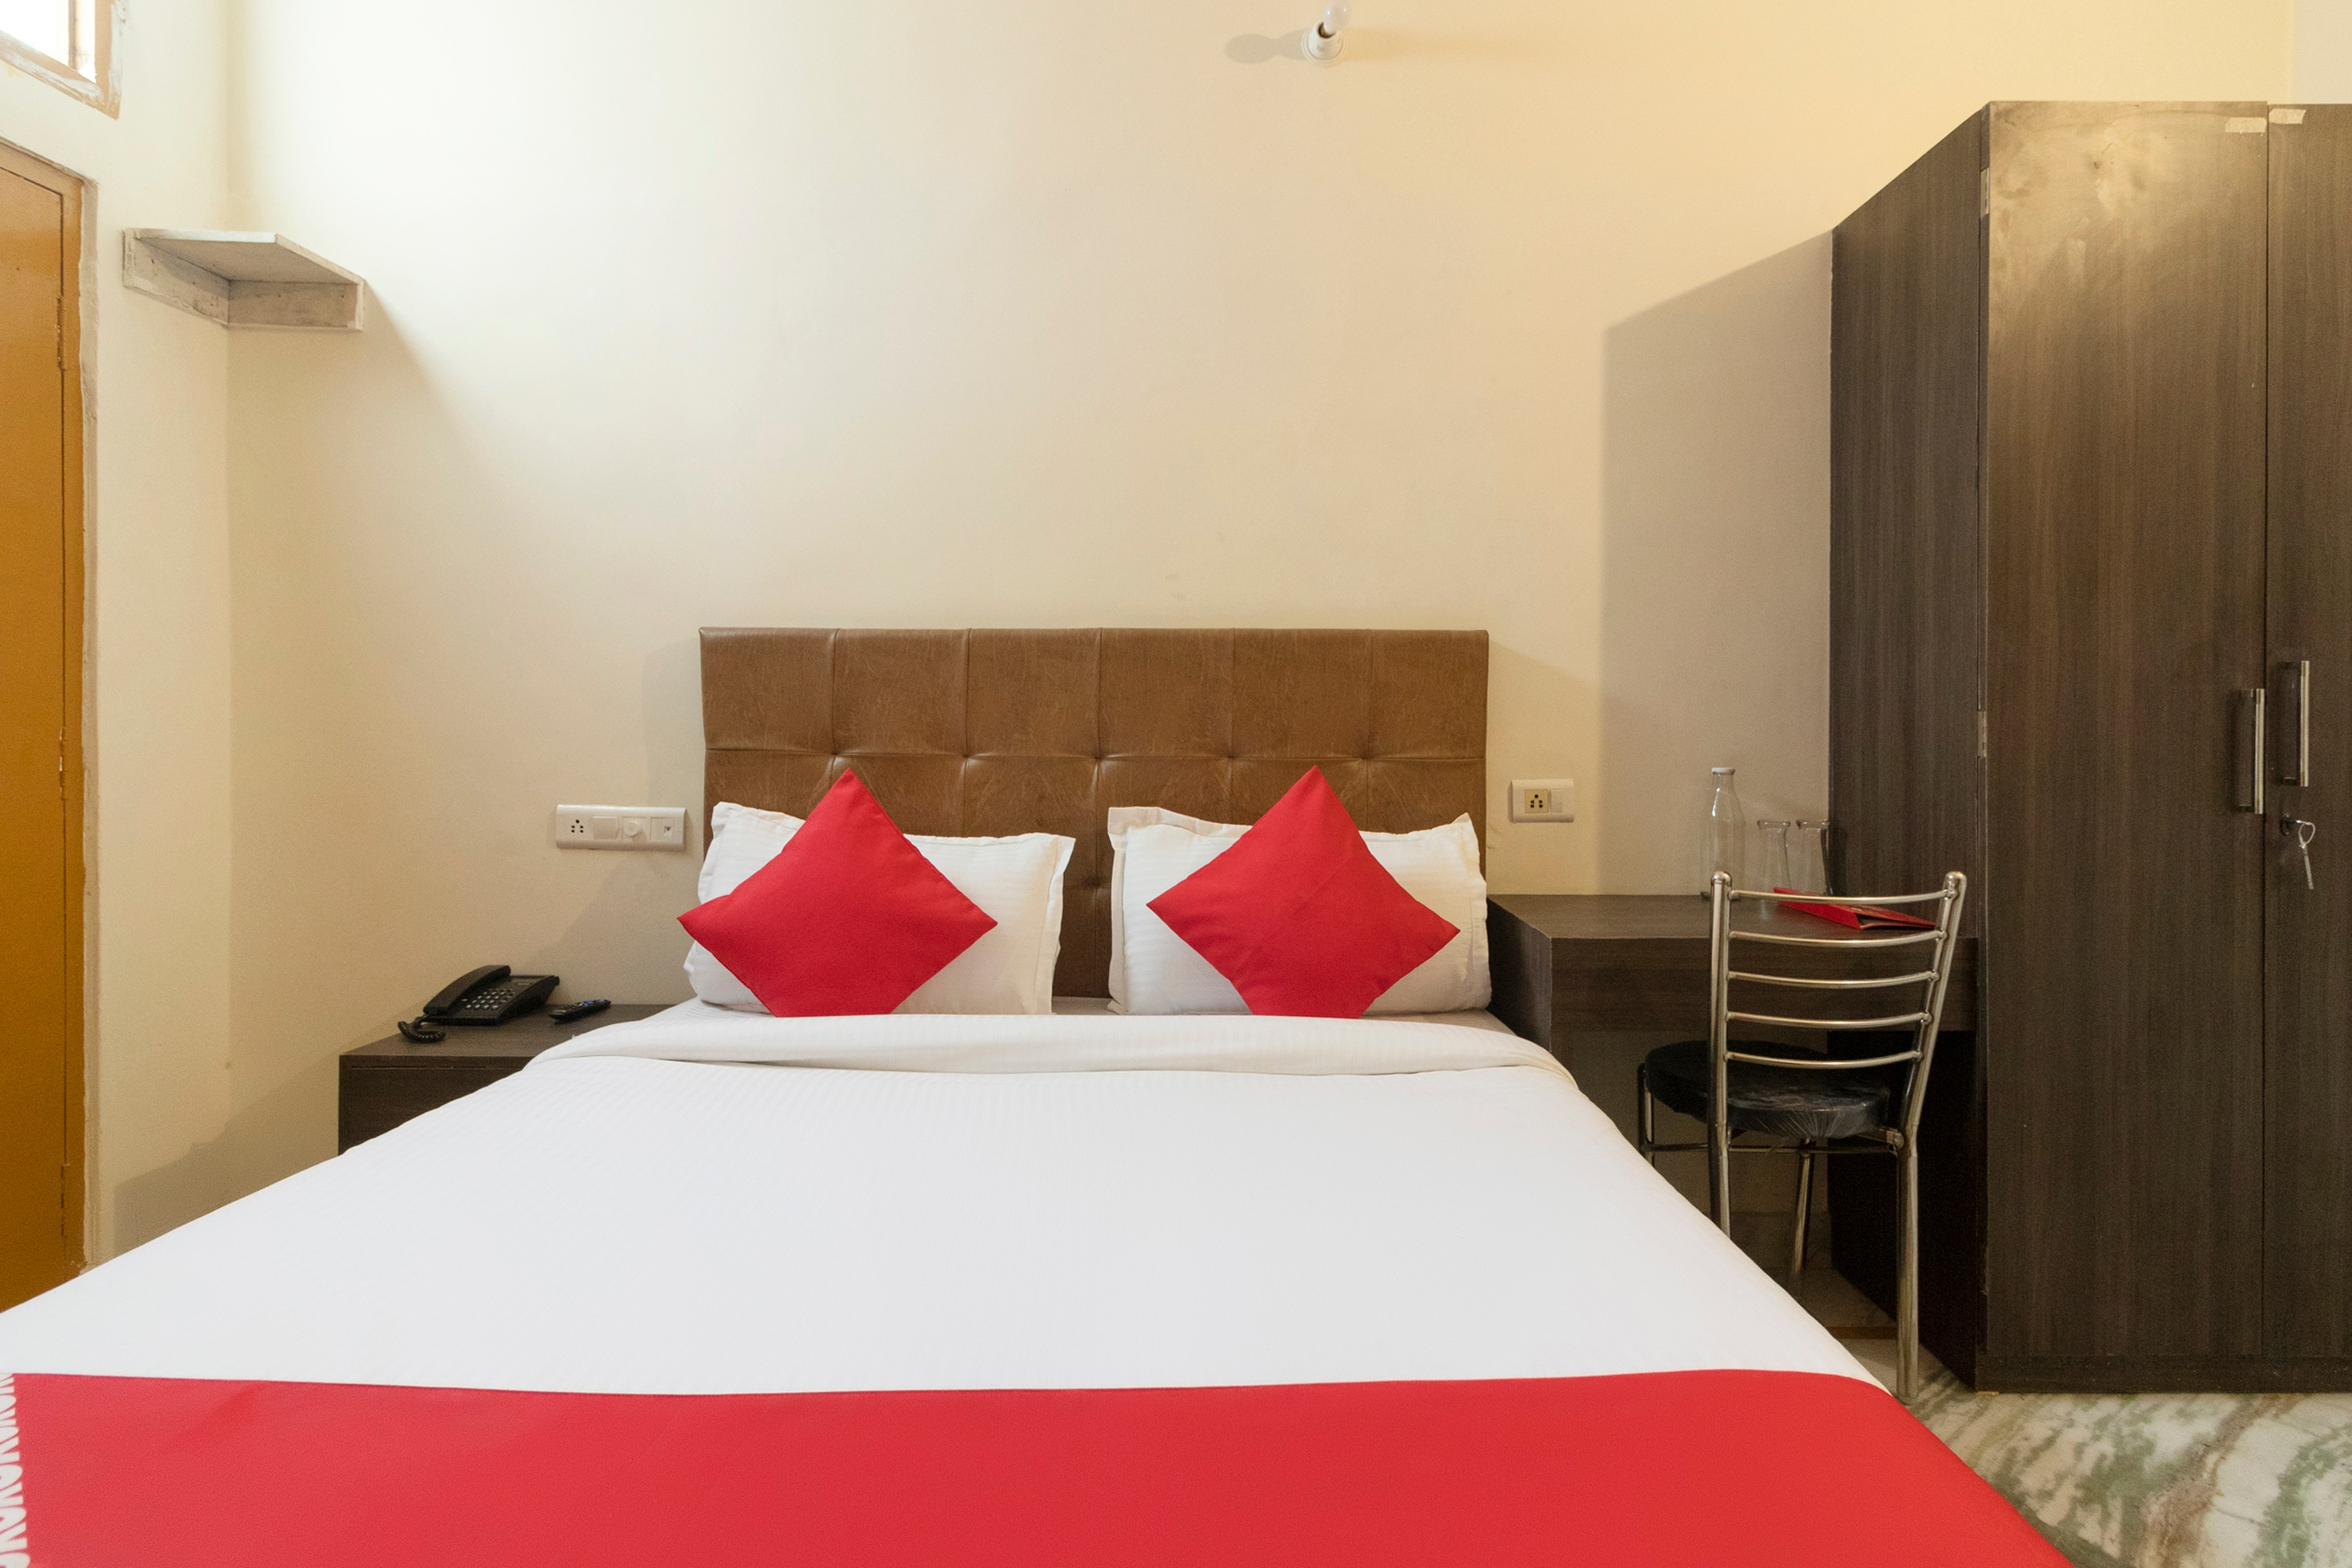 Couple Hotels in Varanasi   Couple Friendly Hotel   Starting